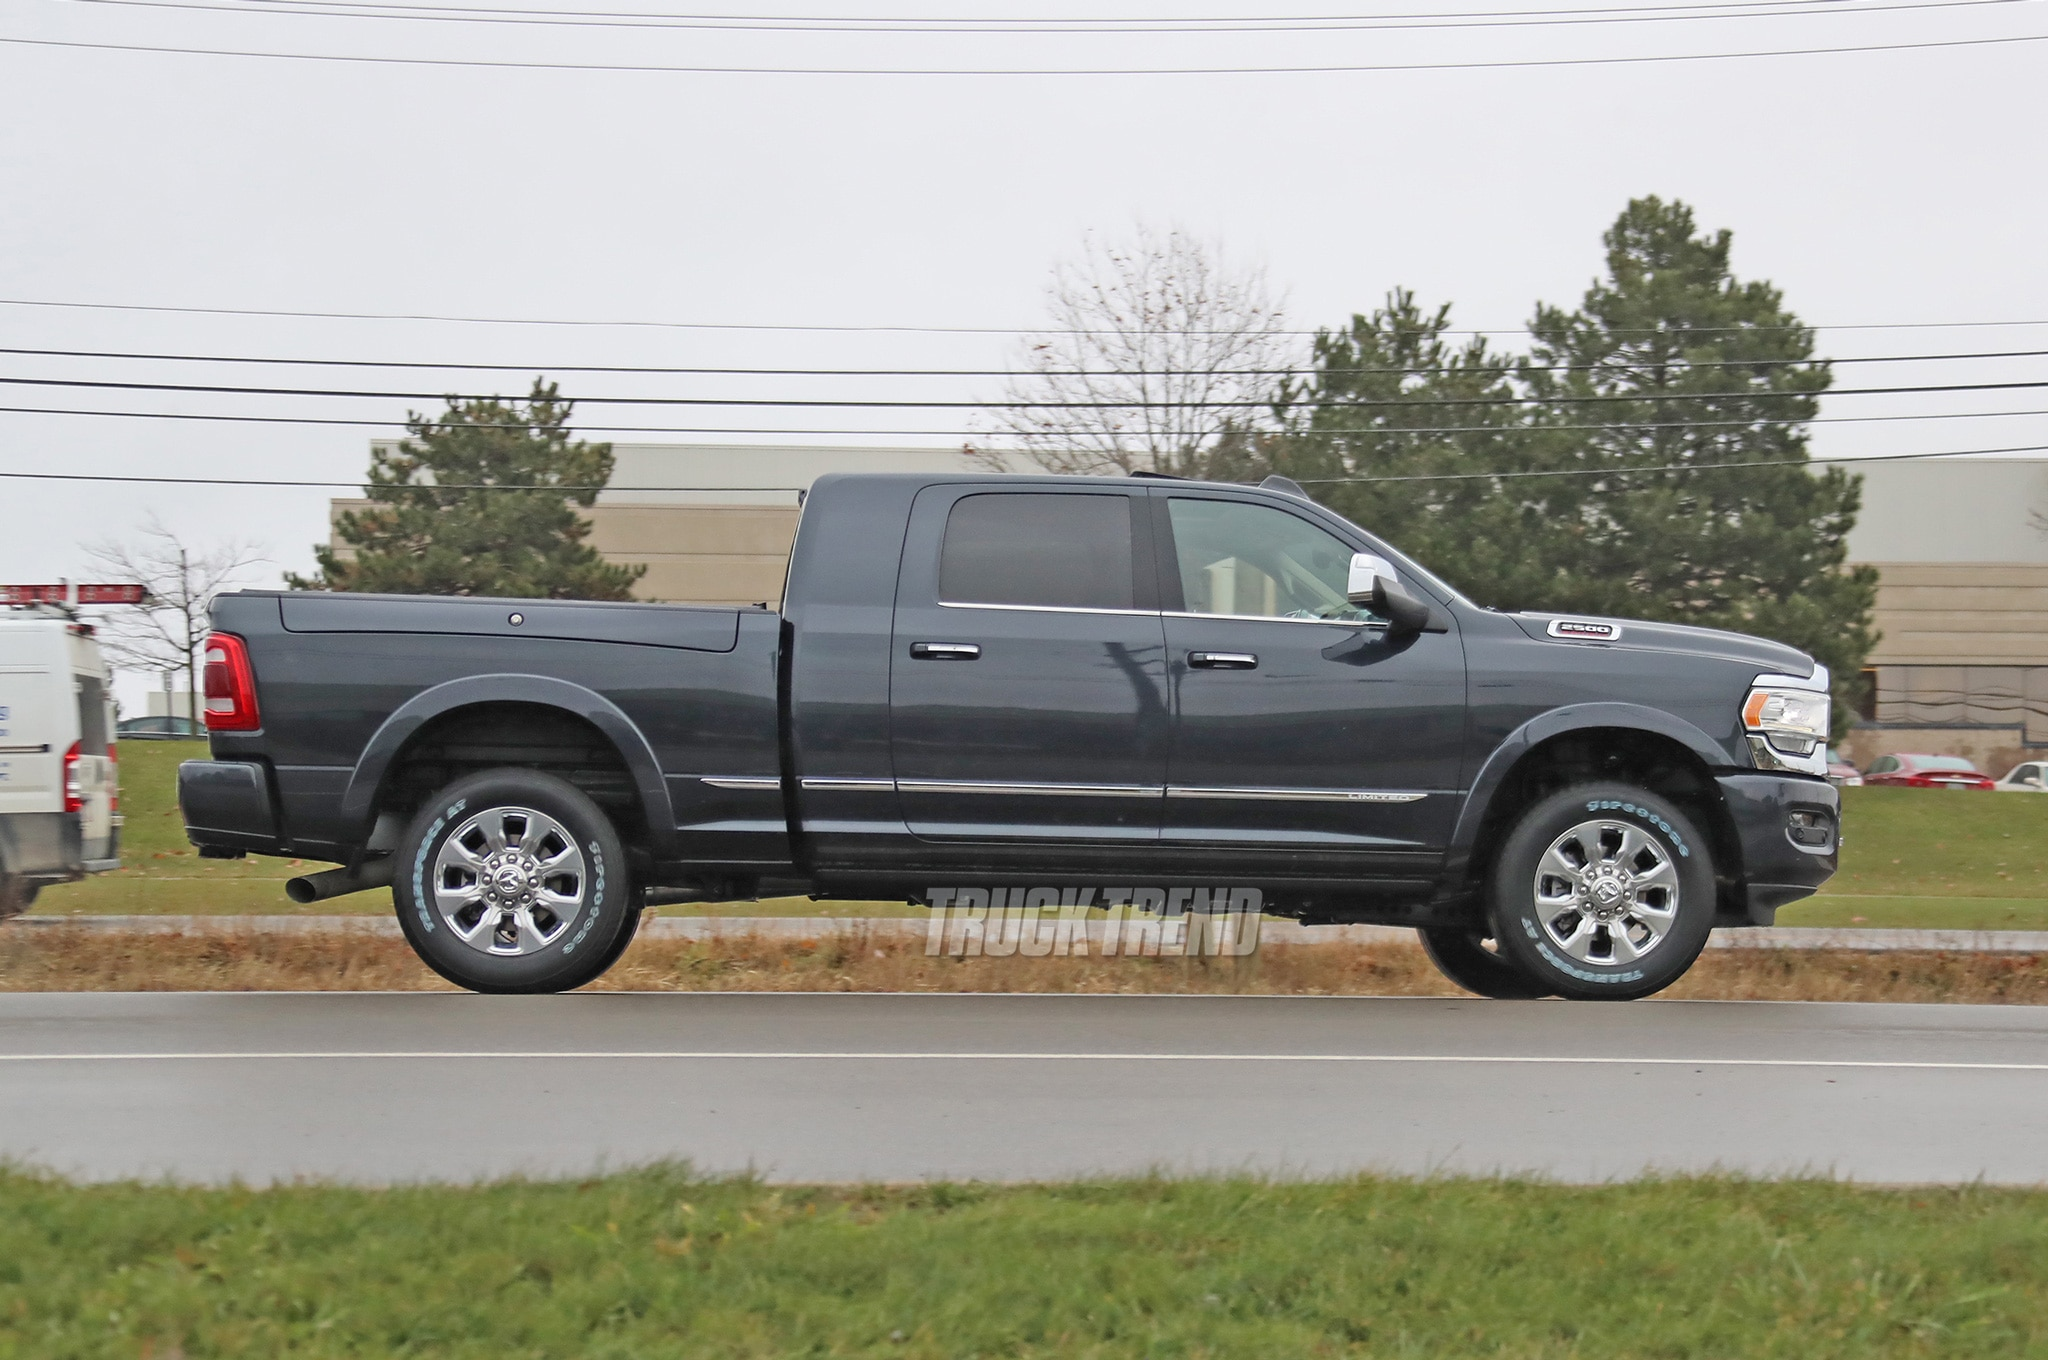 2020 Ram 2500 Heavy Duty Limited Mega Cab Side Profile